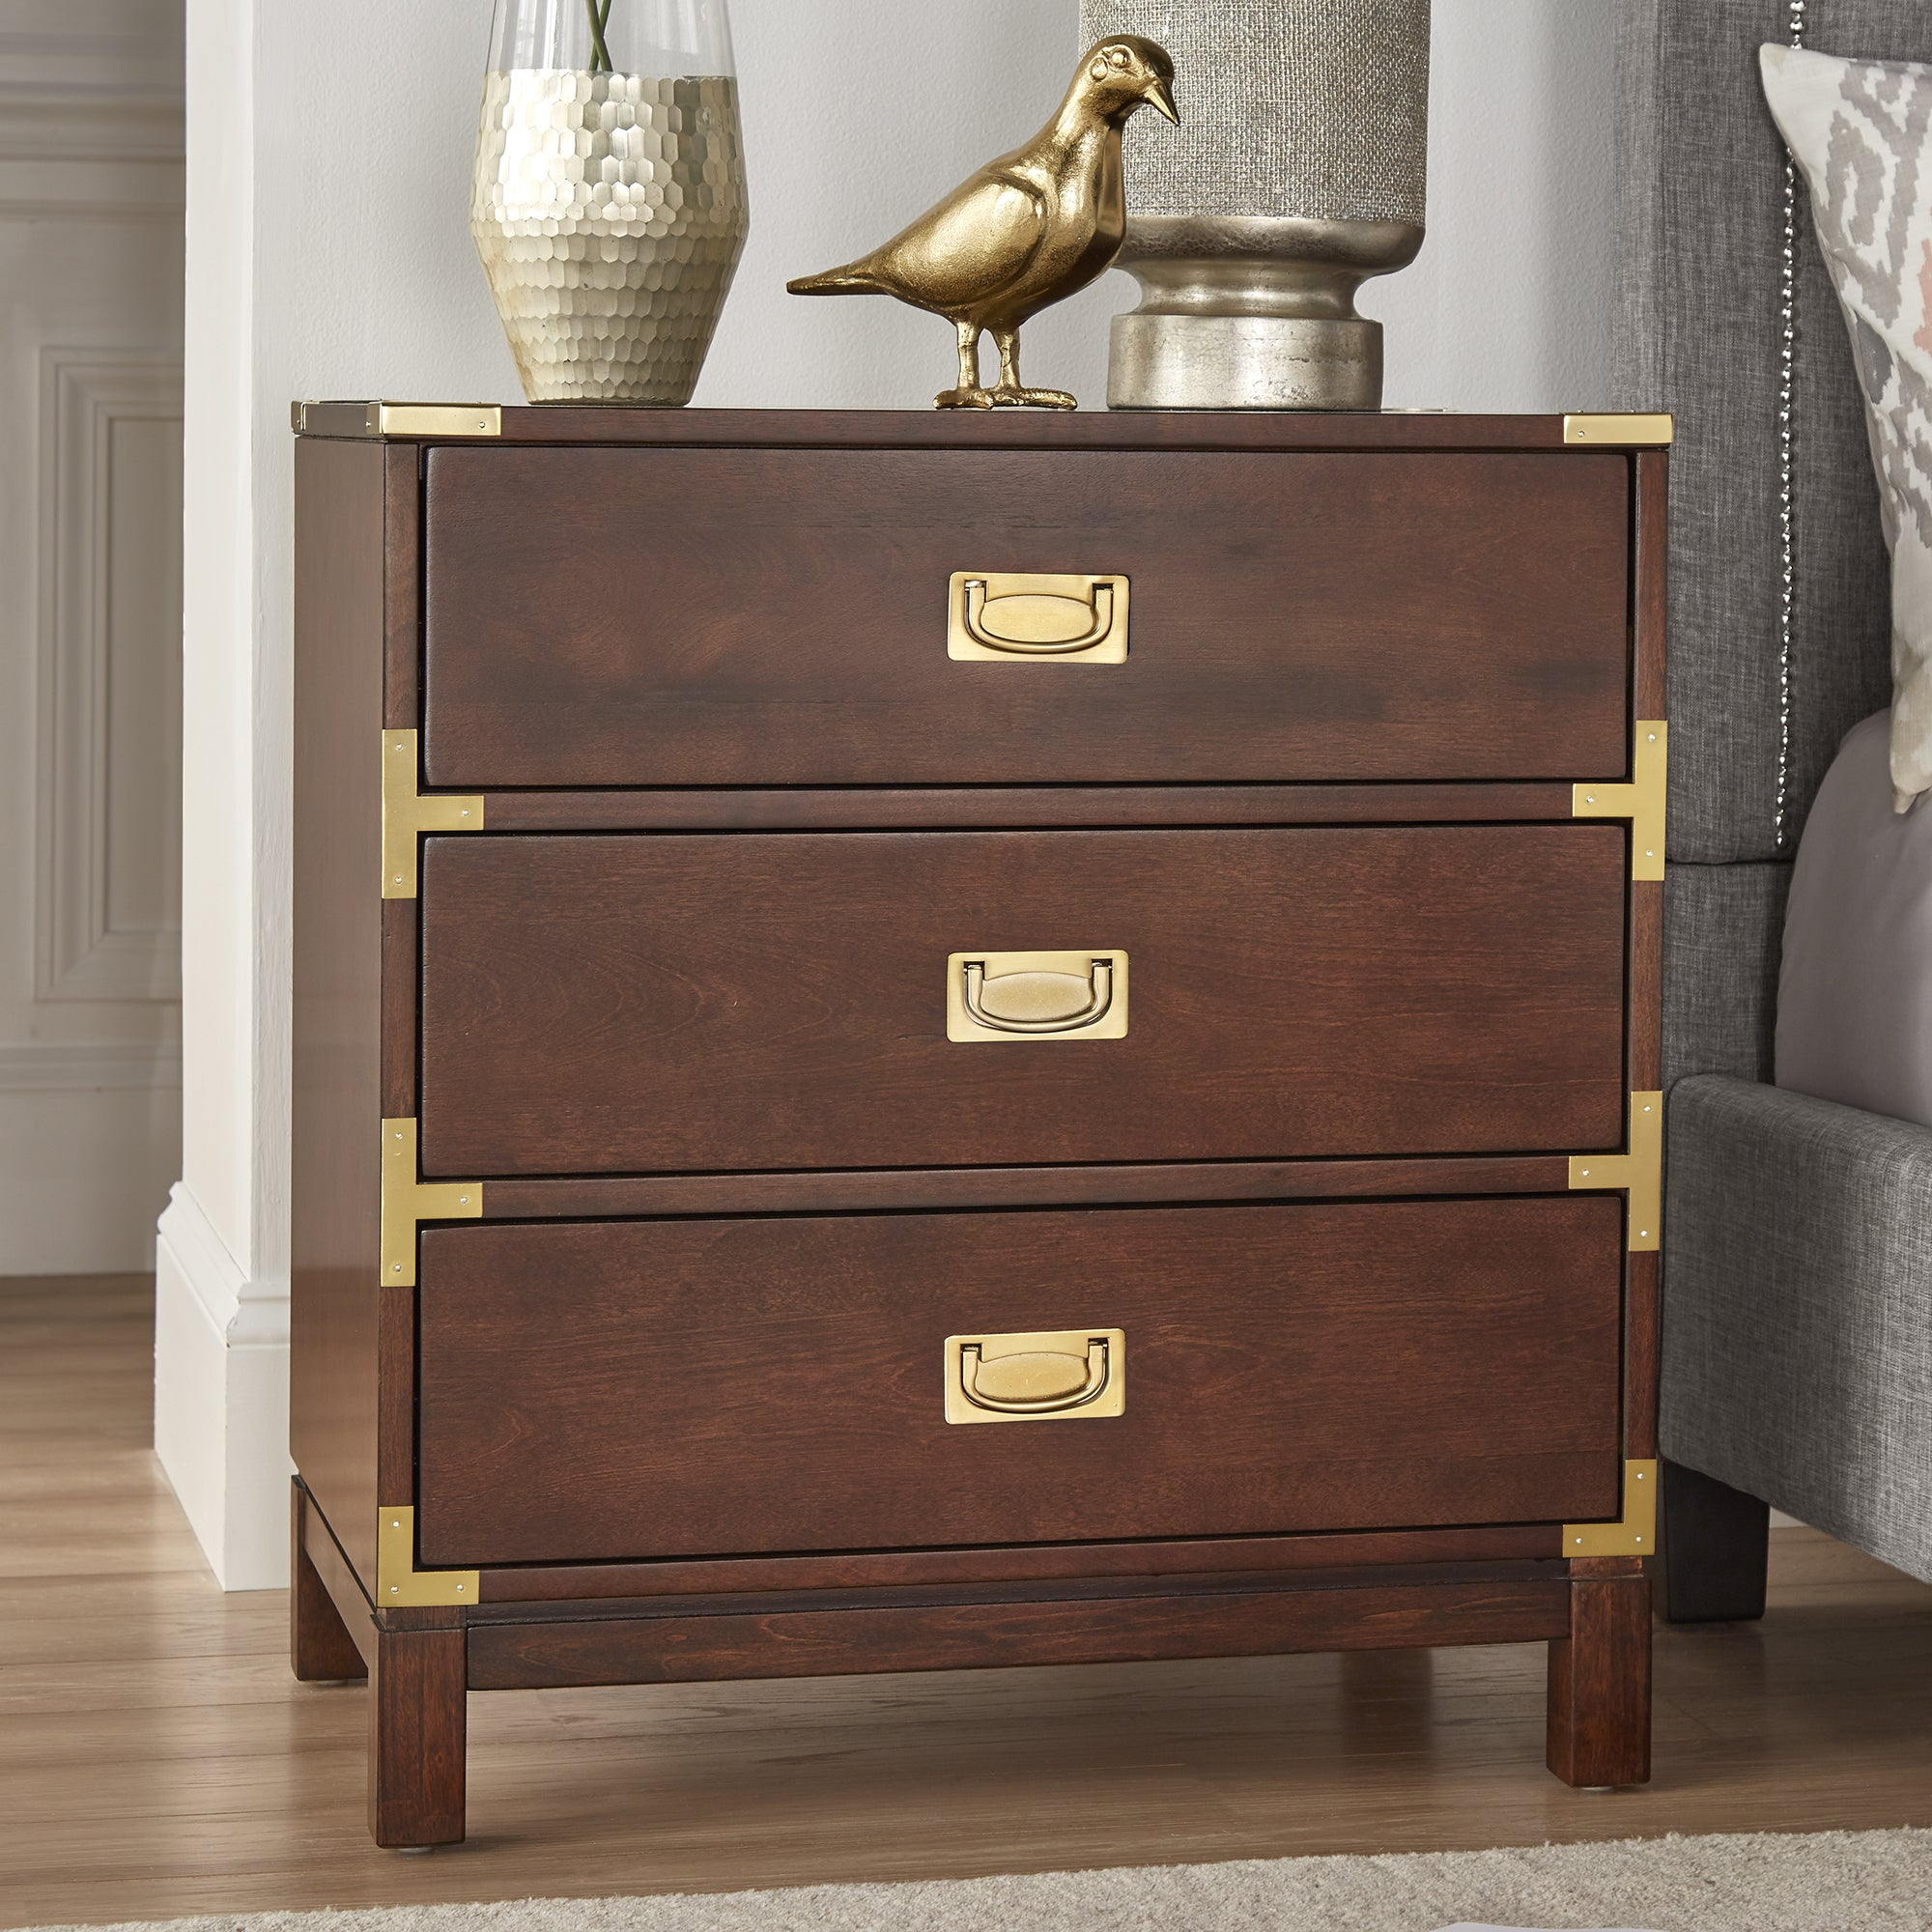 Kedric 3 Drawer Gold Accent End Table Nightstand by iNSPIRE Q Bold